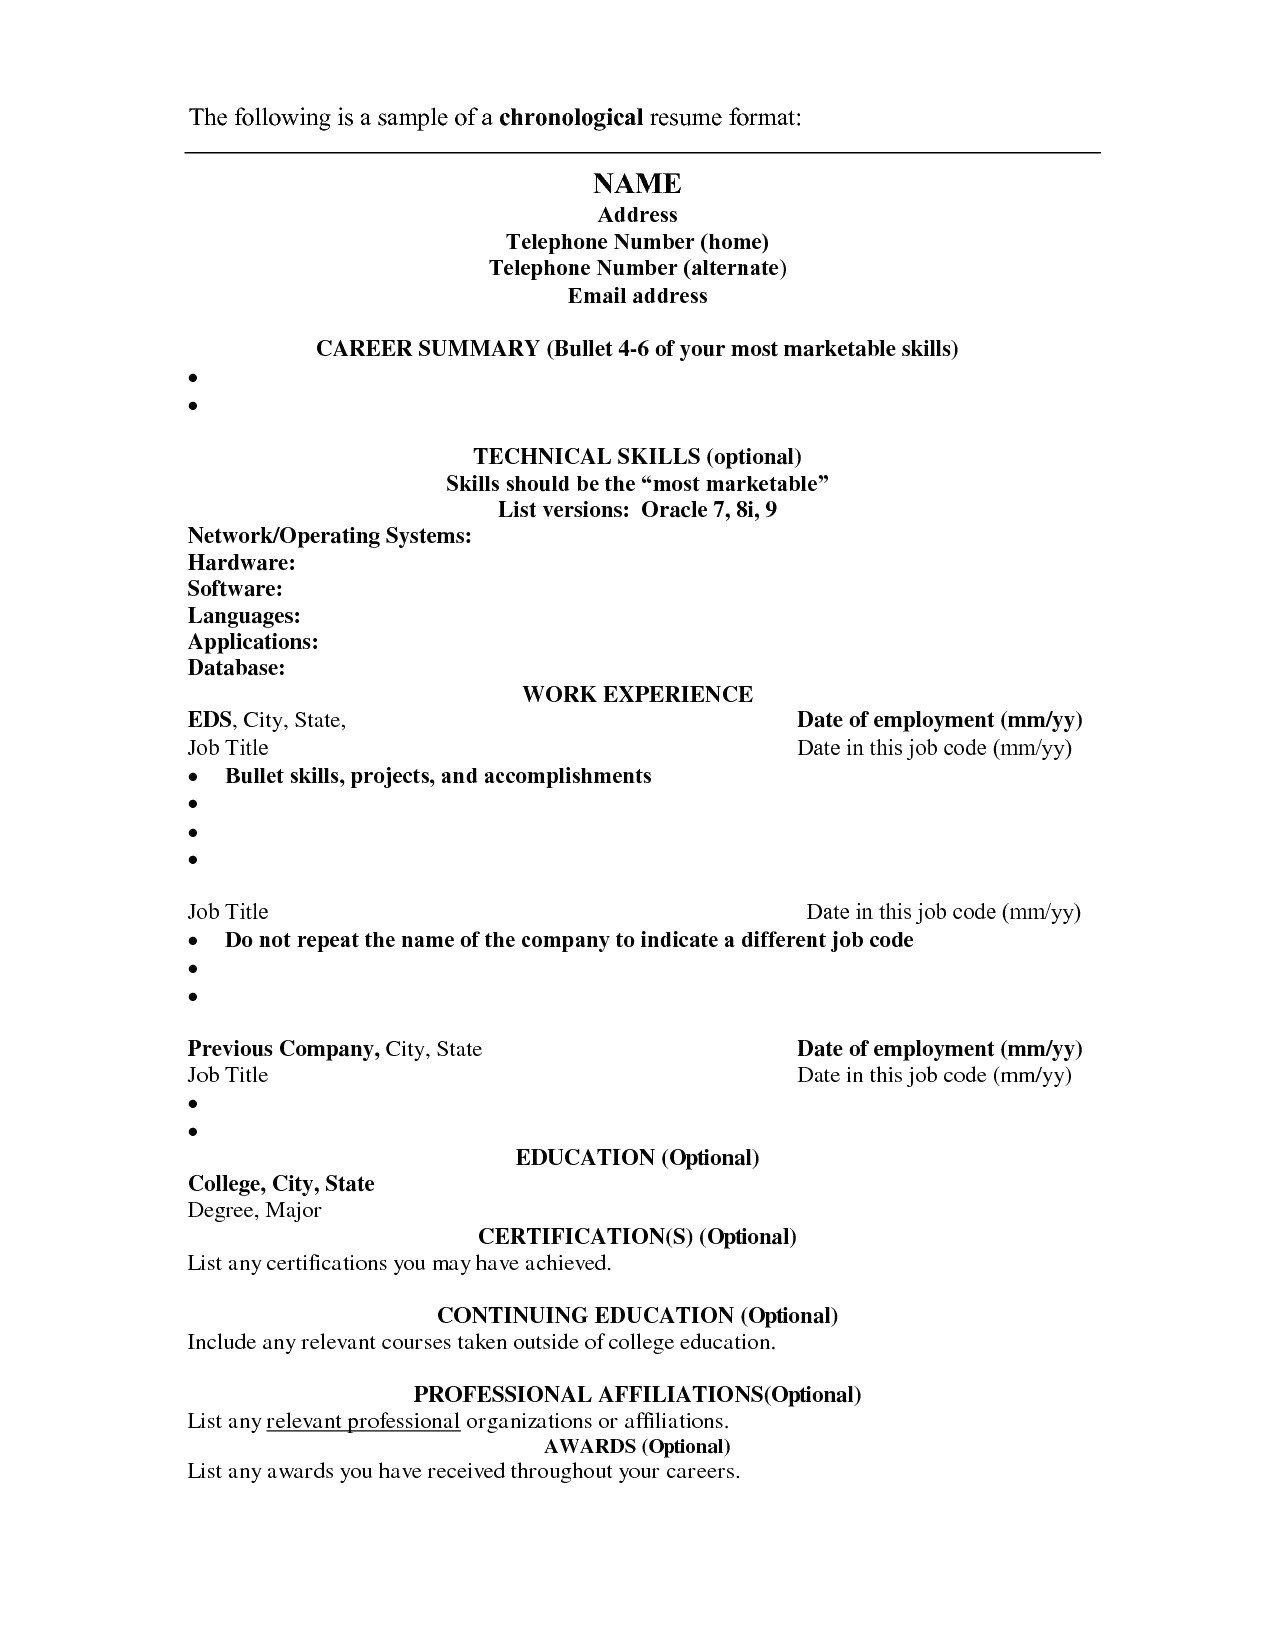 Best Sites to Post Resume - 36 Fresh Cover Letter and Resume